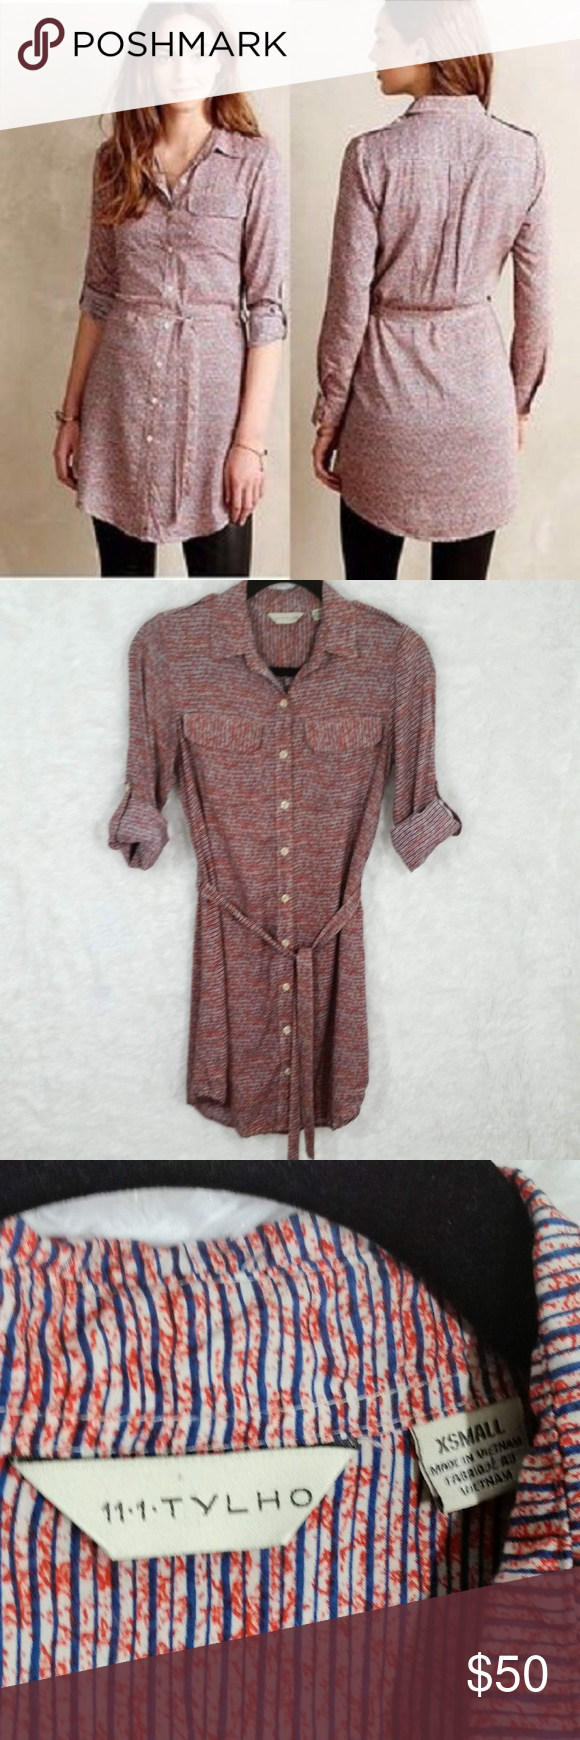 373623d84aa5 🎄Anthro 11-1-Tylho Button Up Striped Tunic Dress Hi Guys! i'm Selling this Anthropologie  11-1-TYLHO button down tunic dress! It's a size XS in great ...